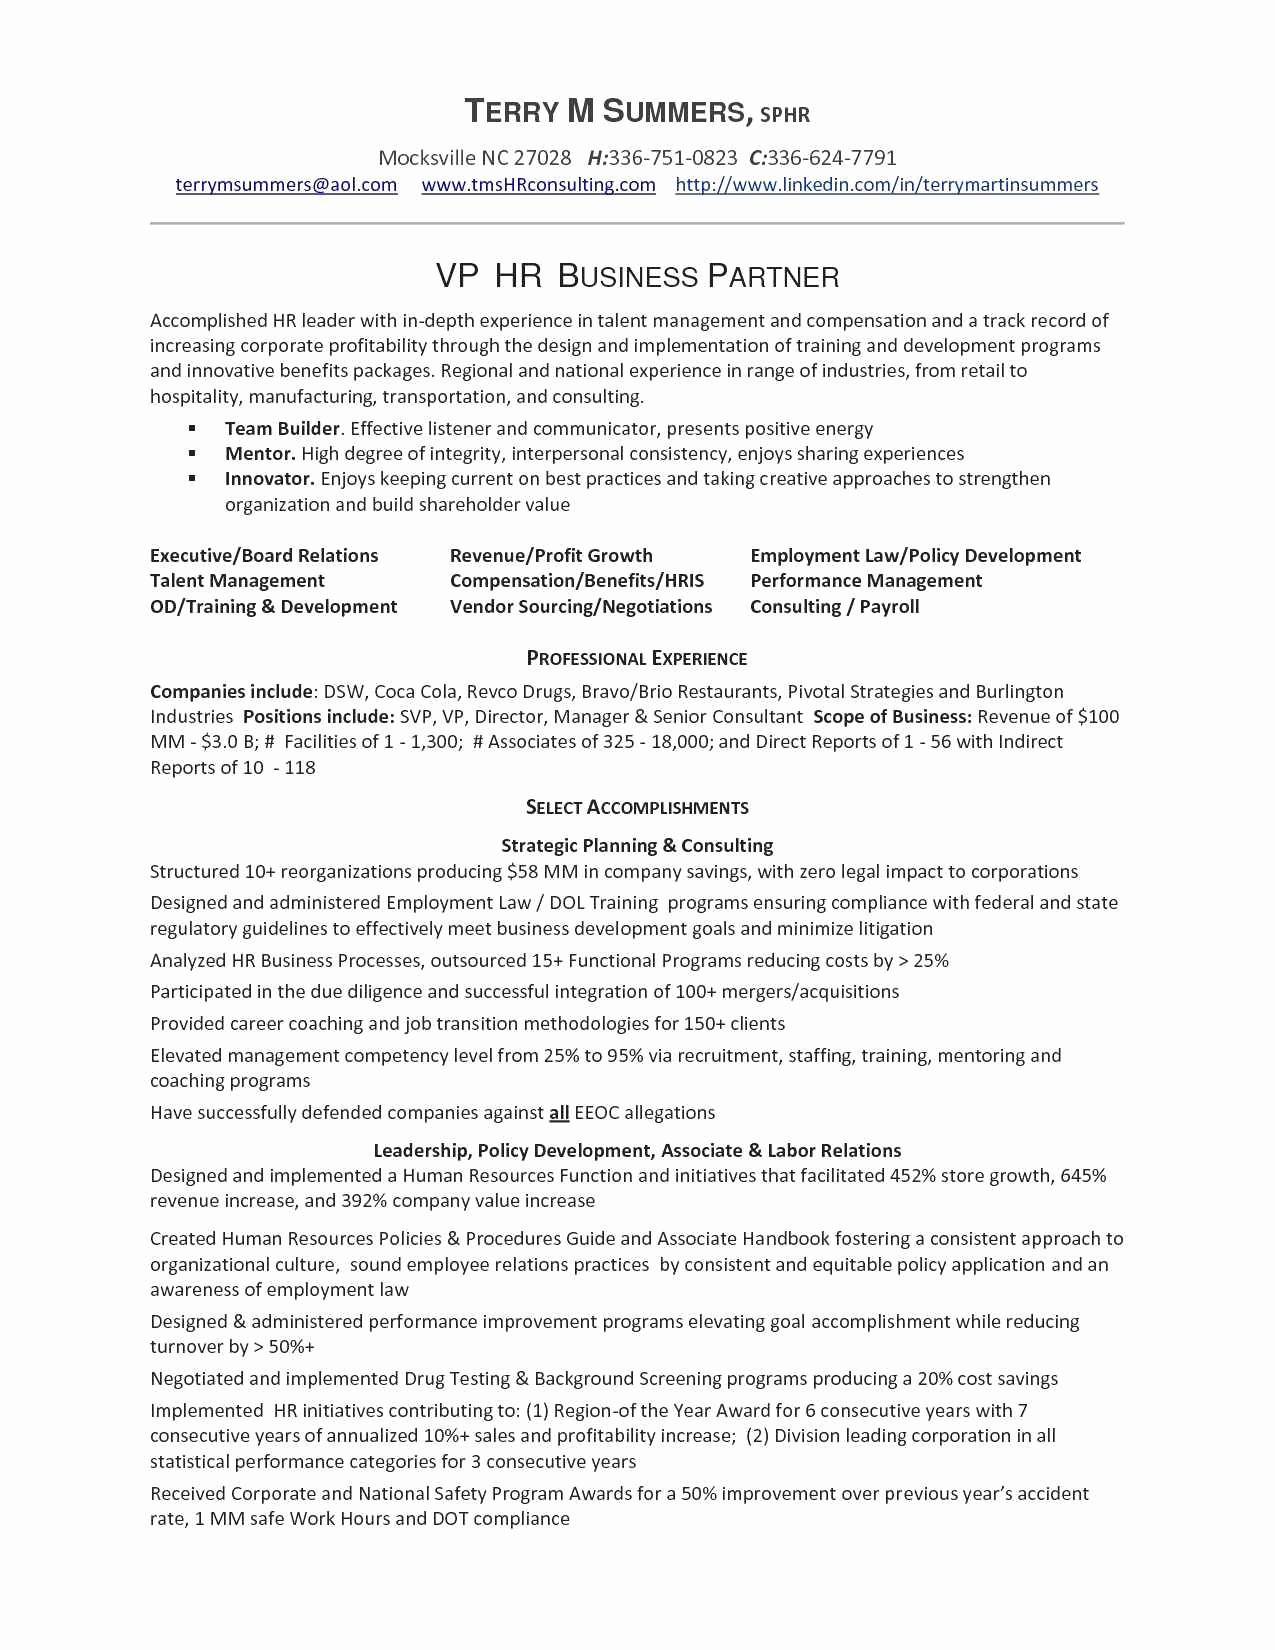 Sample Resume for Medical Billing - Medical Billing Resume Fresh Sample Resume for Medical Billing